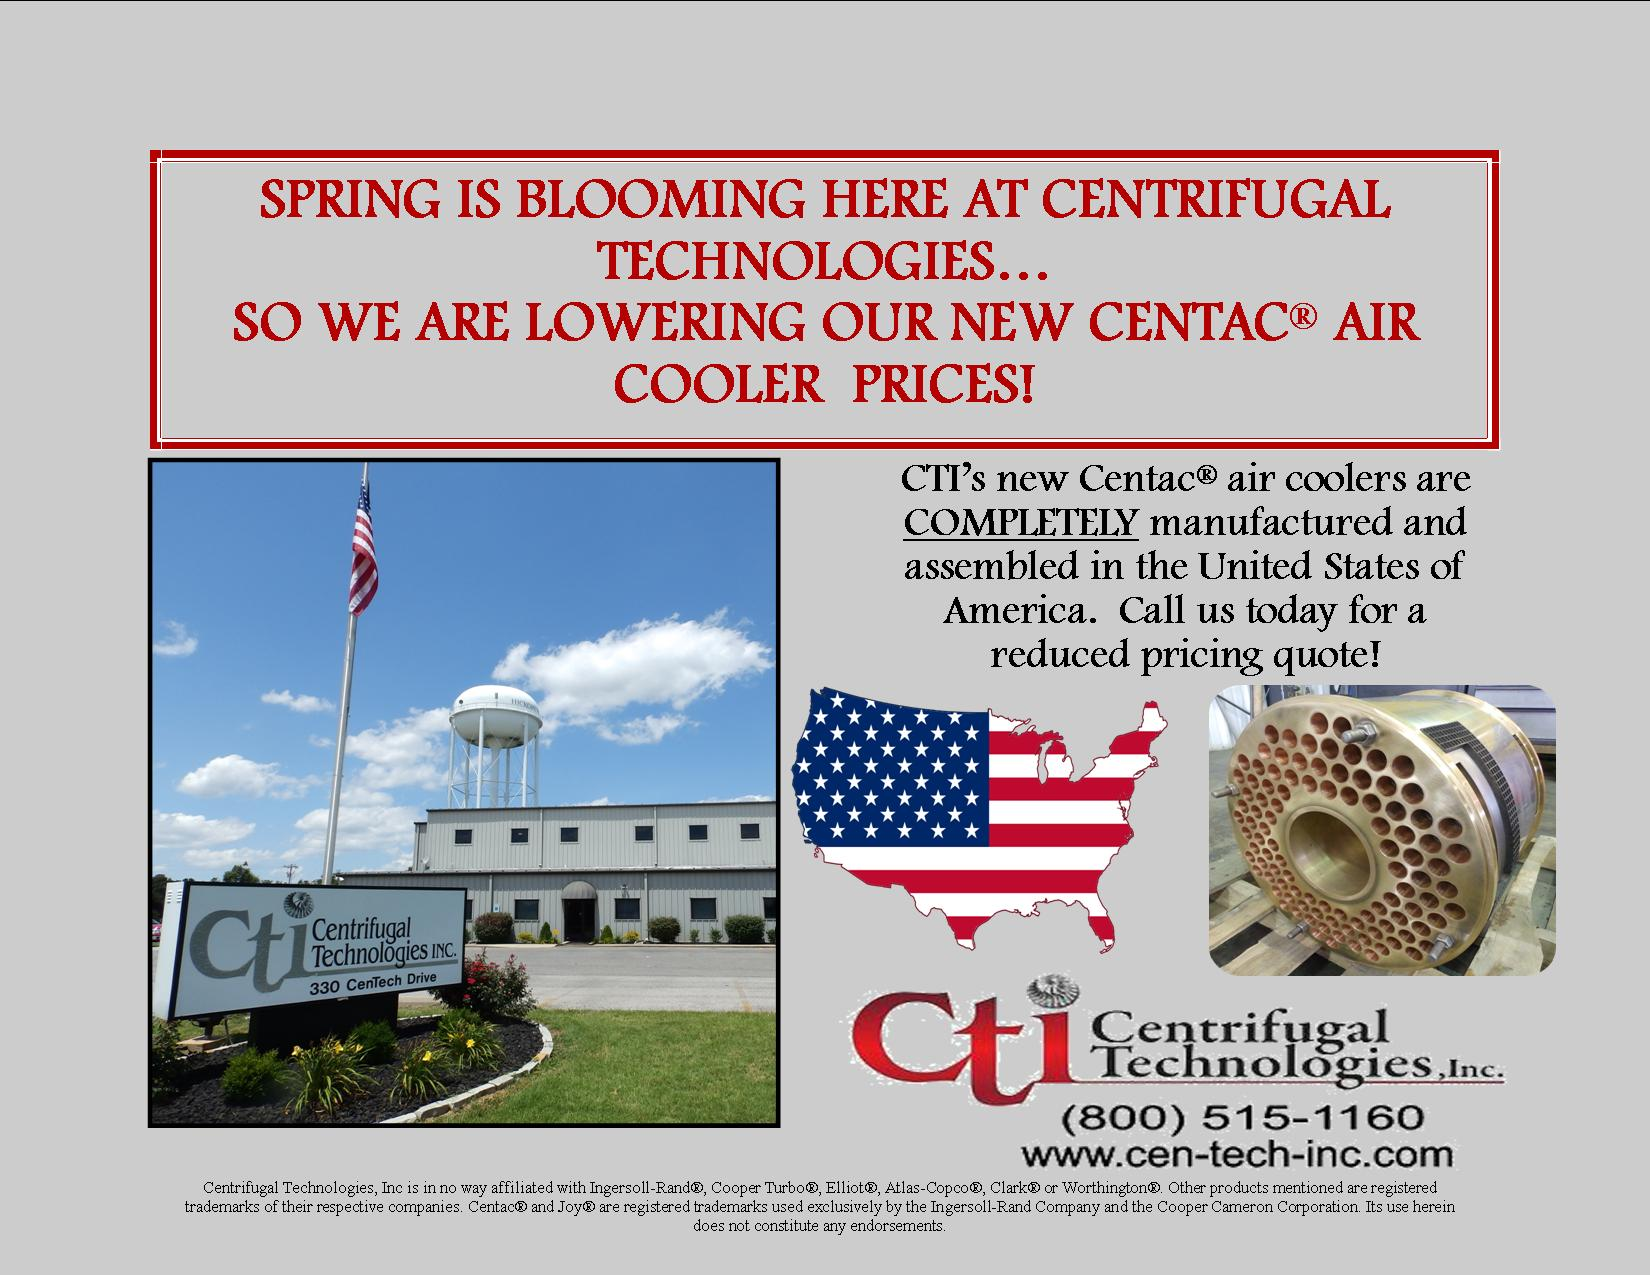 Spring is Blooming Here at CTI & We are Lowering our New Centac® Air Cooler Prices